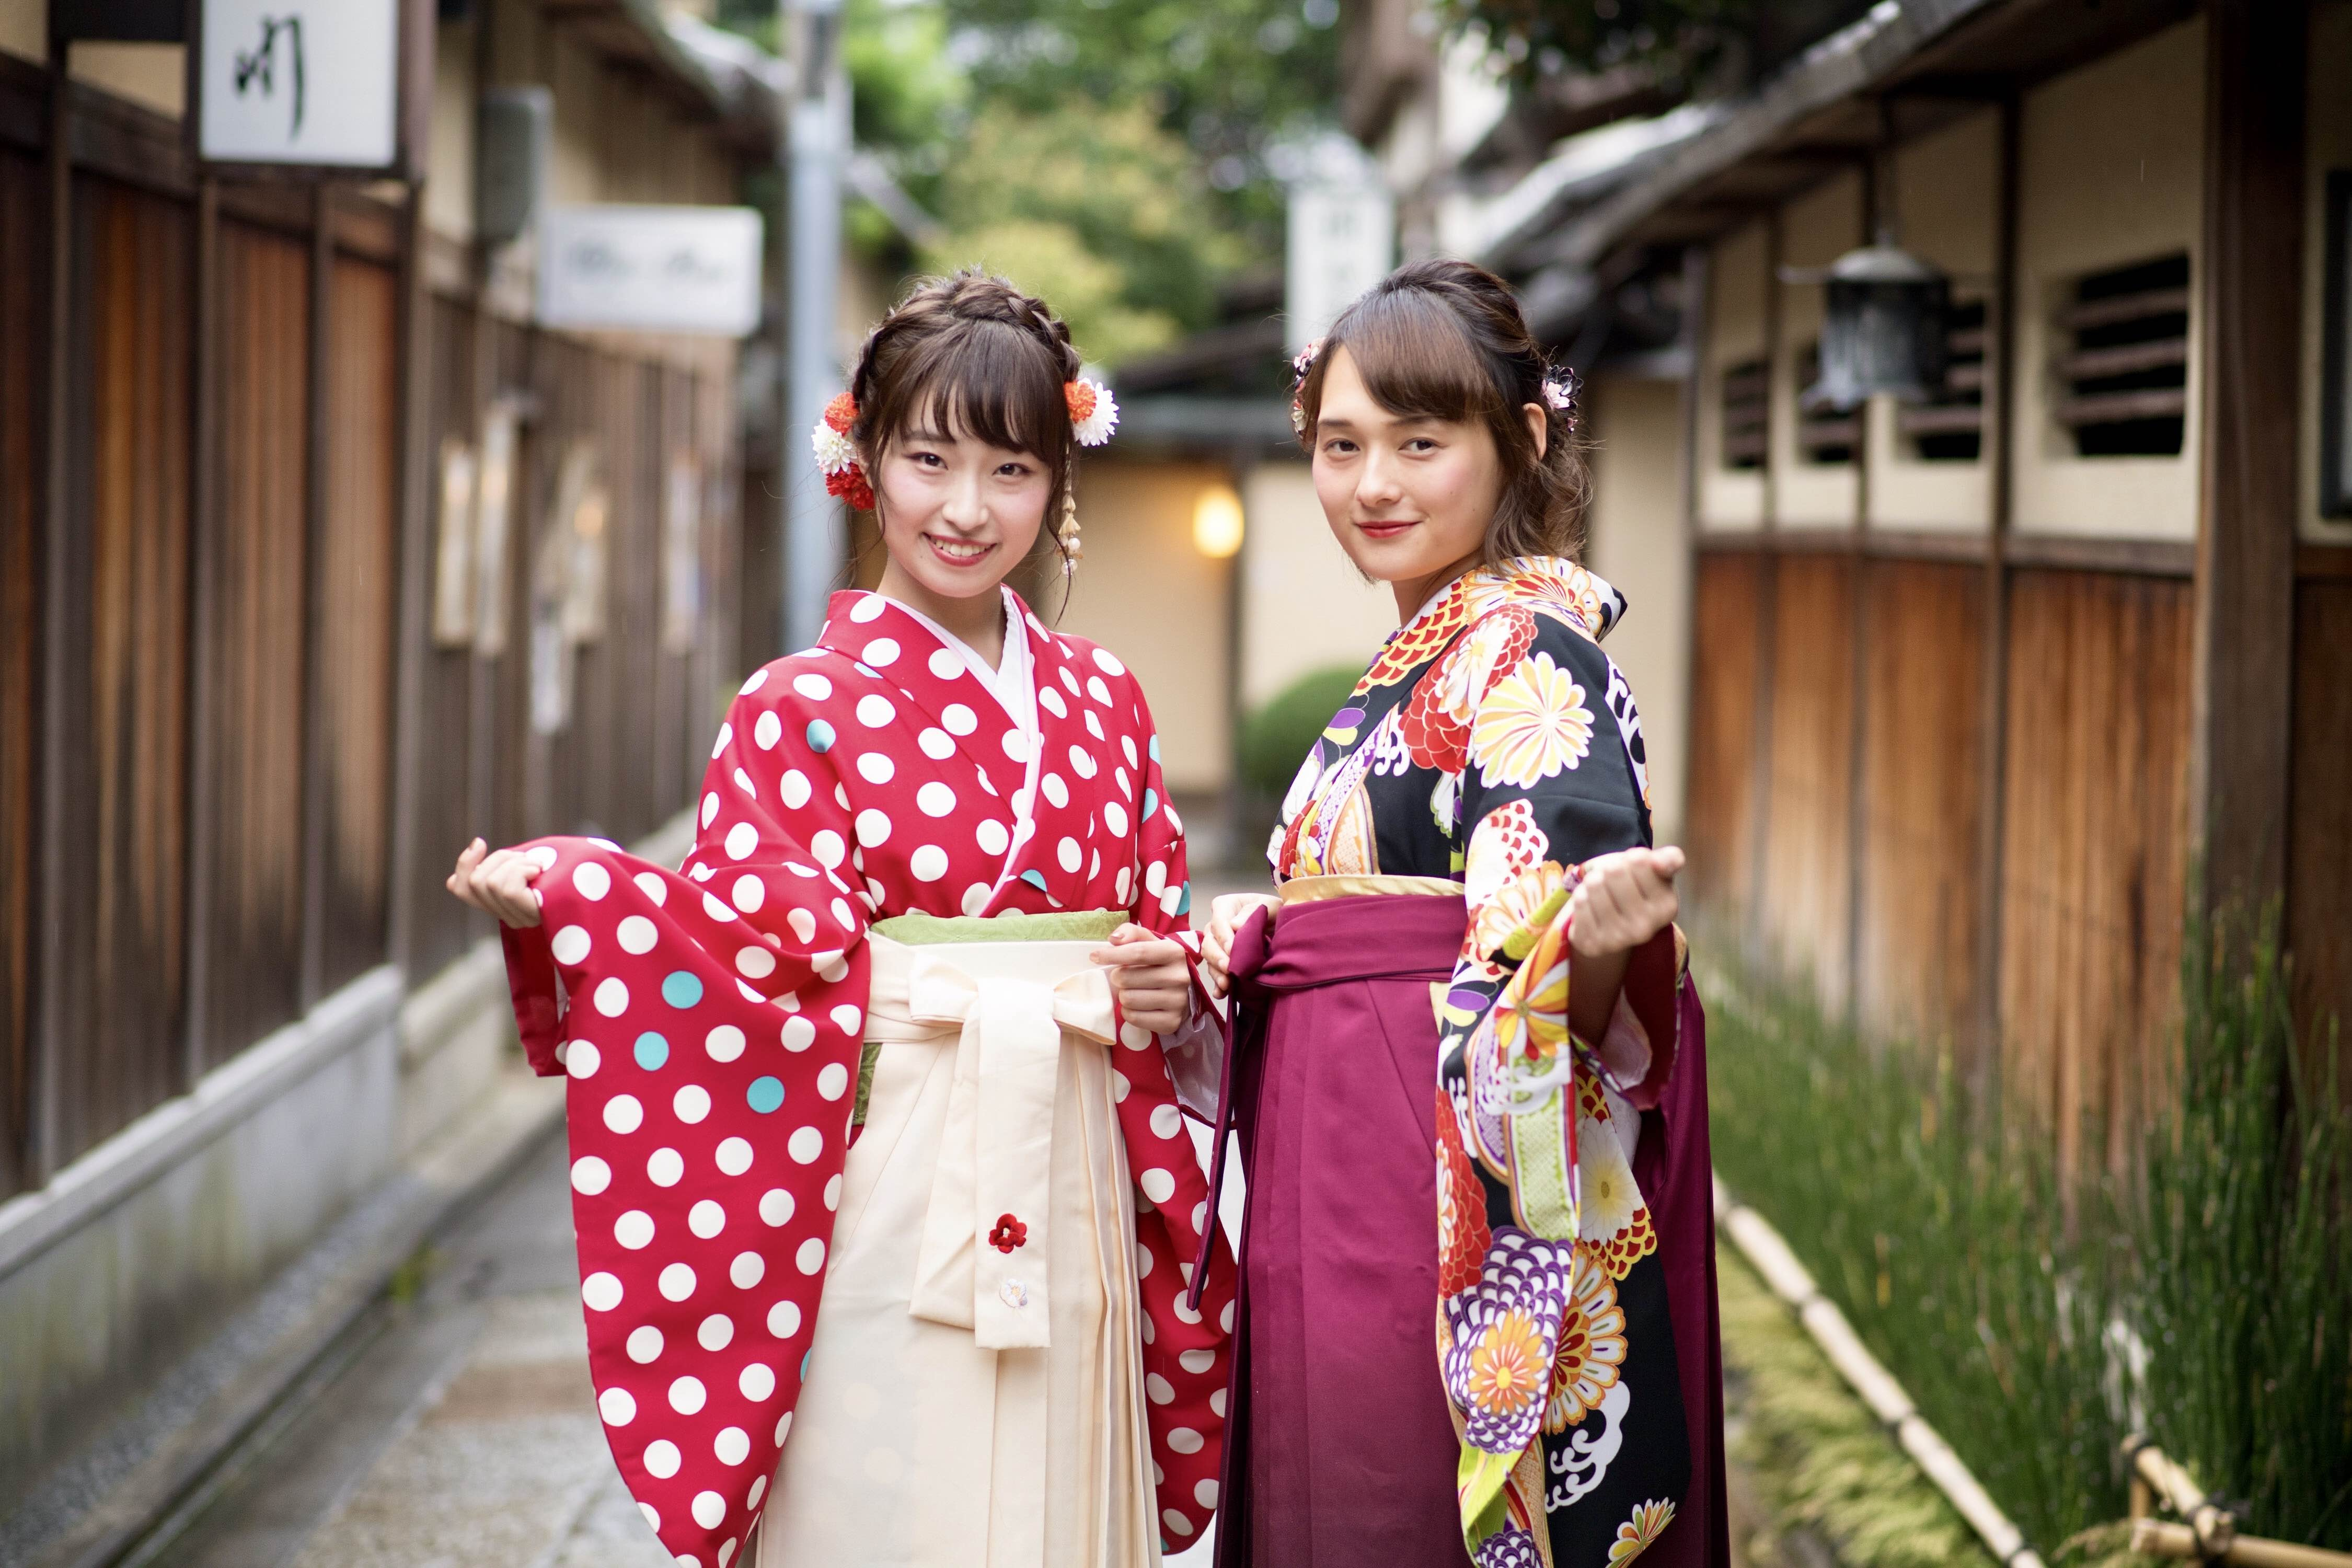 Dating apps for meeting singles in japan